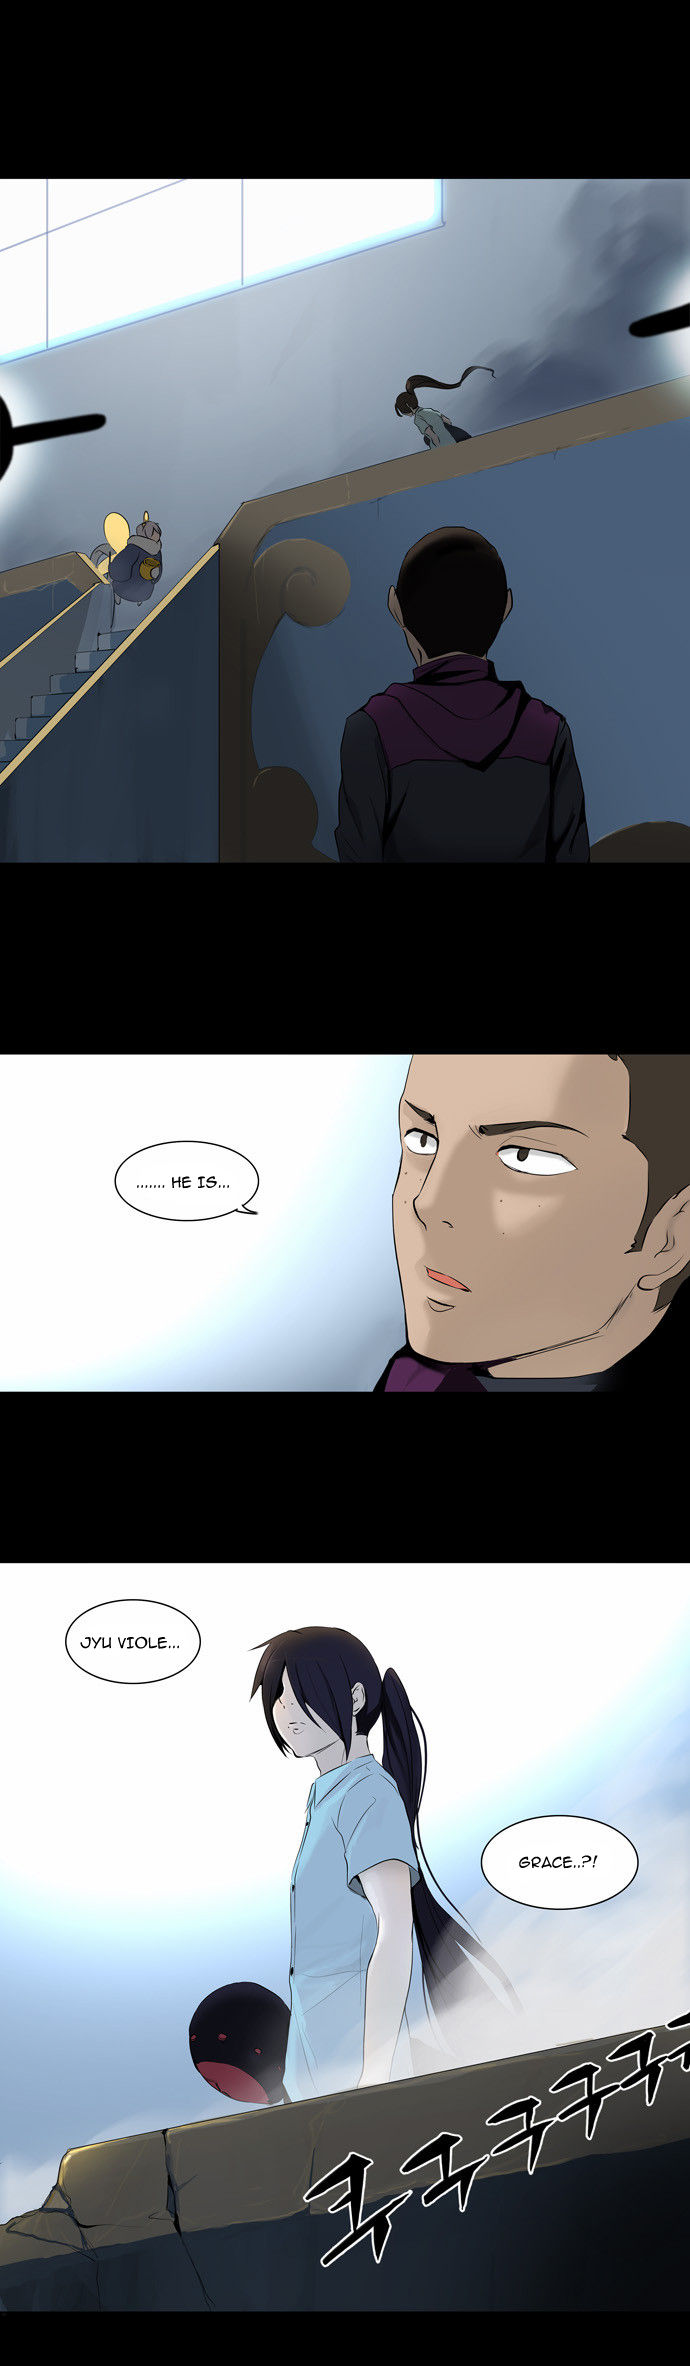 Tower of God 144 Page 2